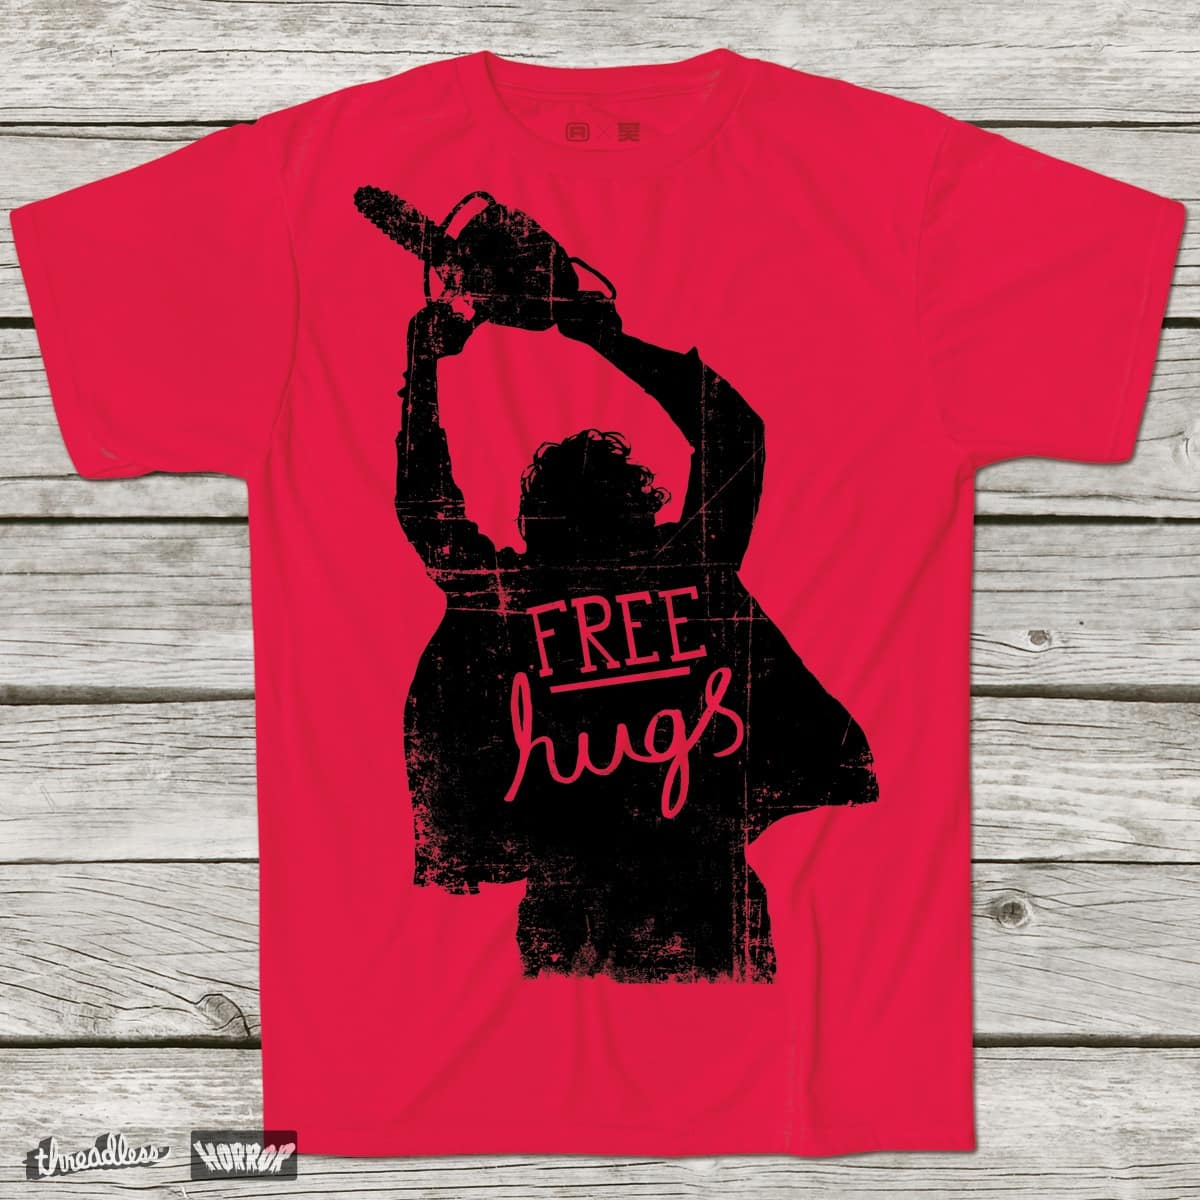 Free Hugs by DinoMike on Threadless